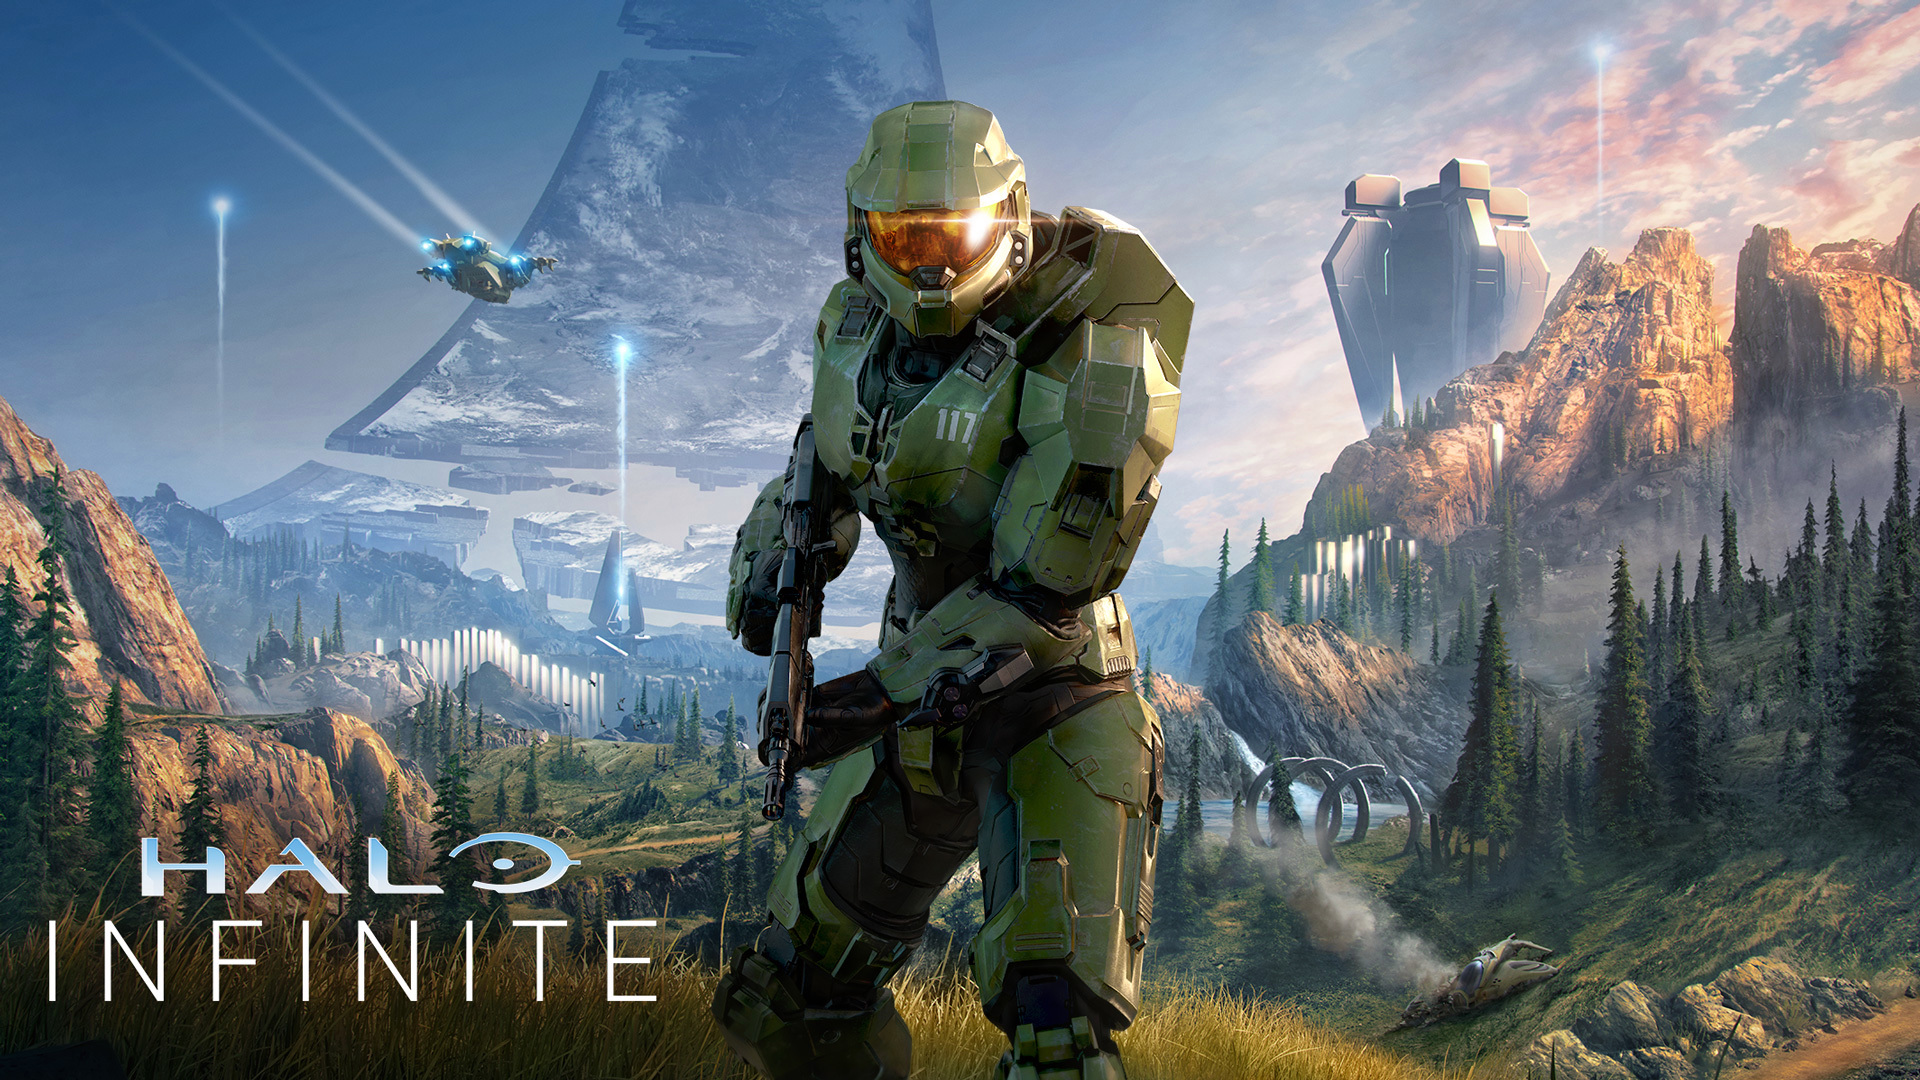 Halo: Infinite Multiplayer To Be Free To Play